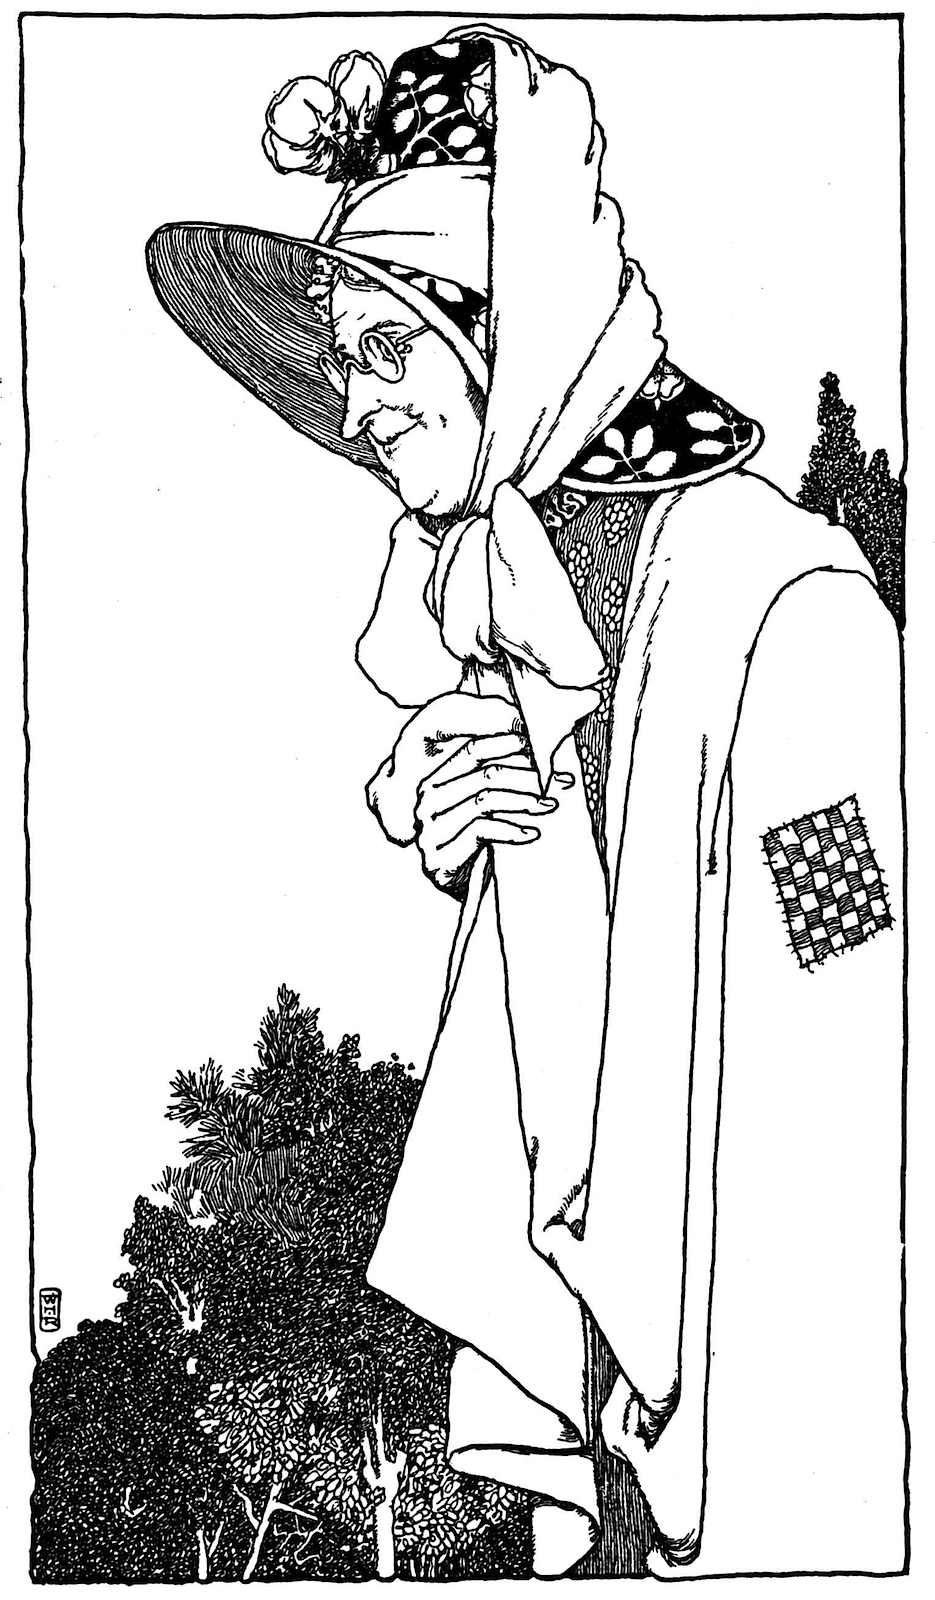 a book illustration by W. Heath Robinson, a smiling poor woman